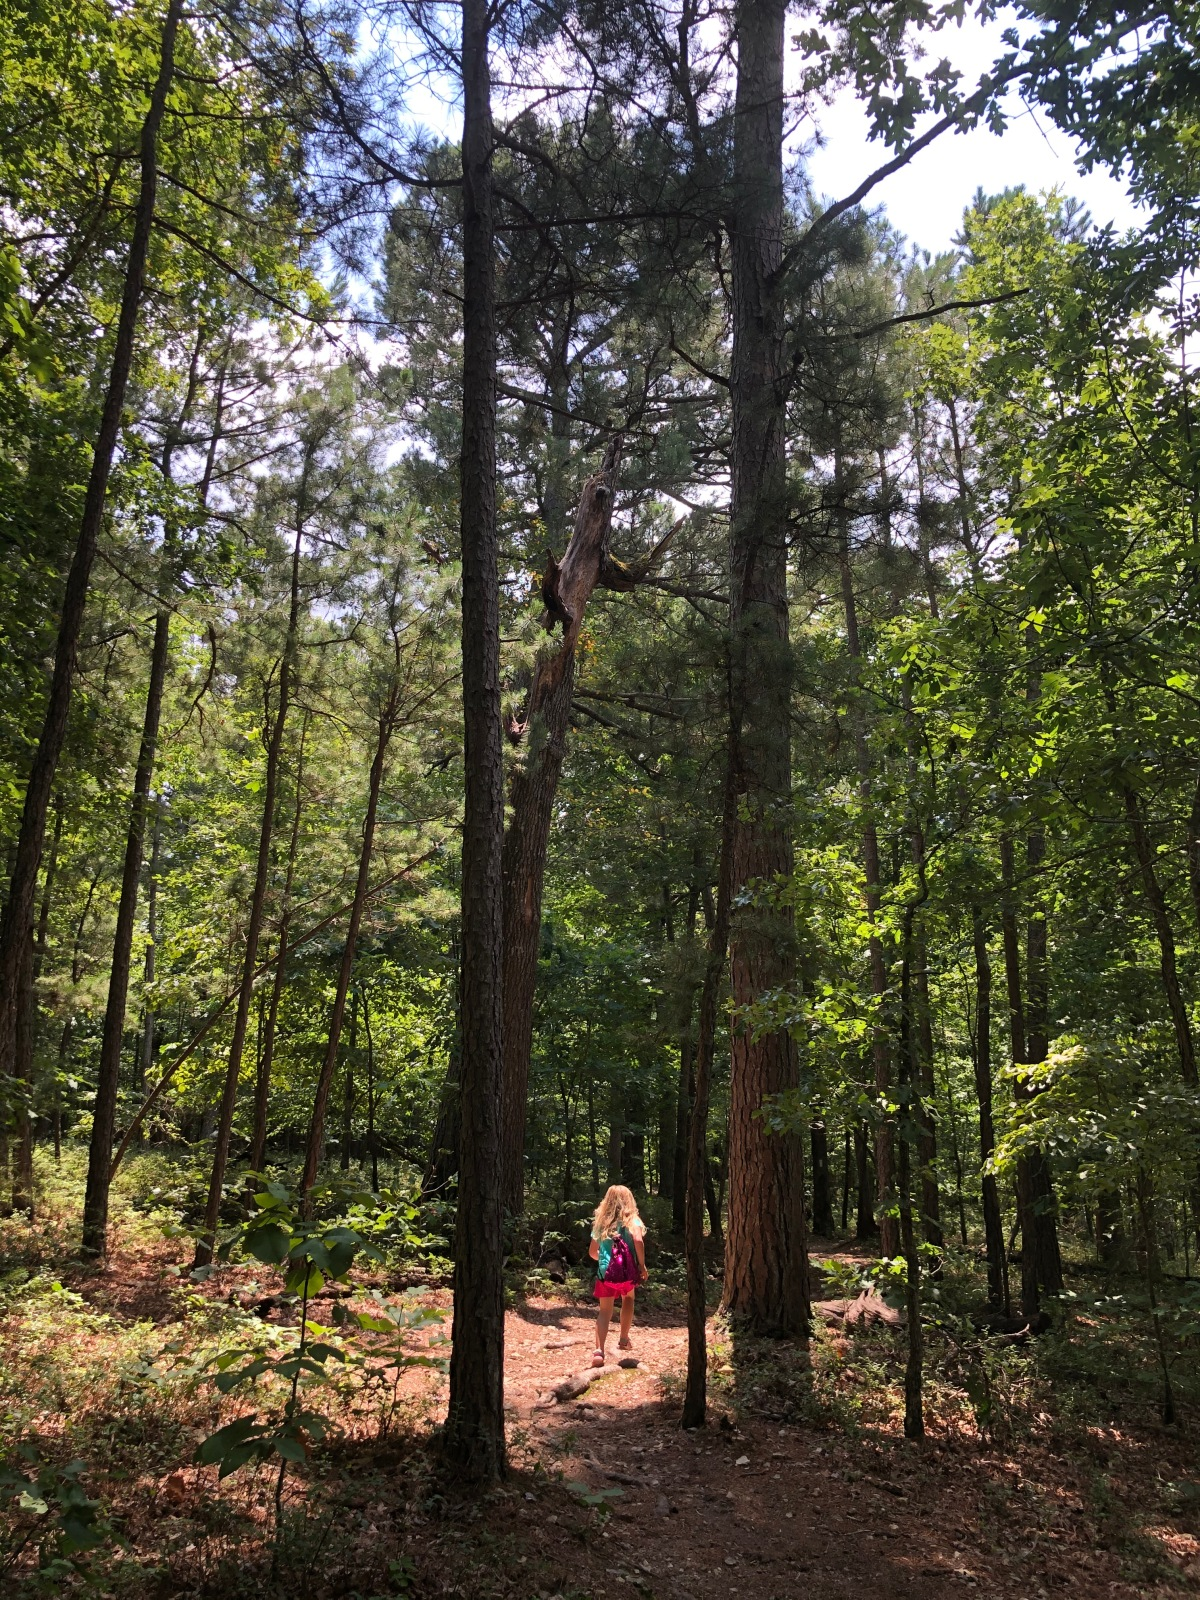 Arkansas Hiking: It's Too Hot, I Hate Ticks, I'm Scared of Snakes…And Other Excuses I Made This Summer